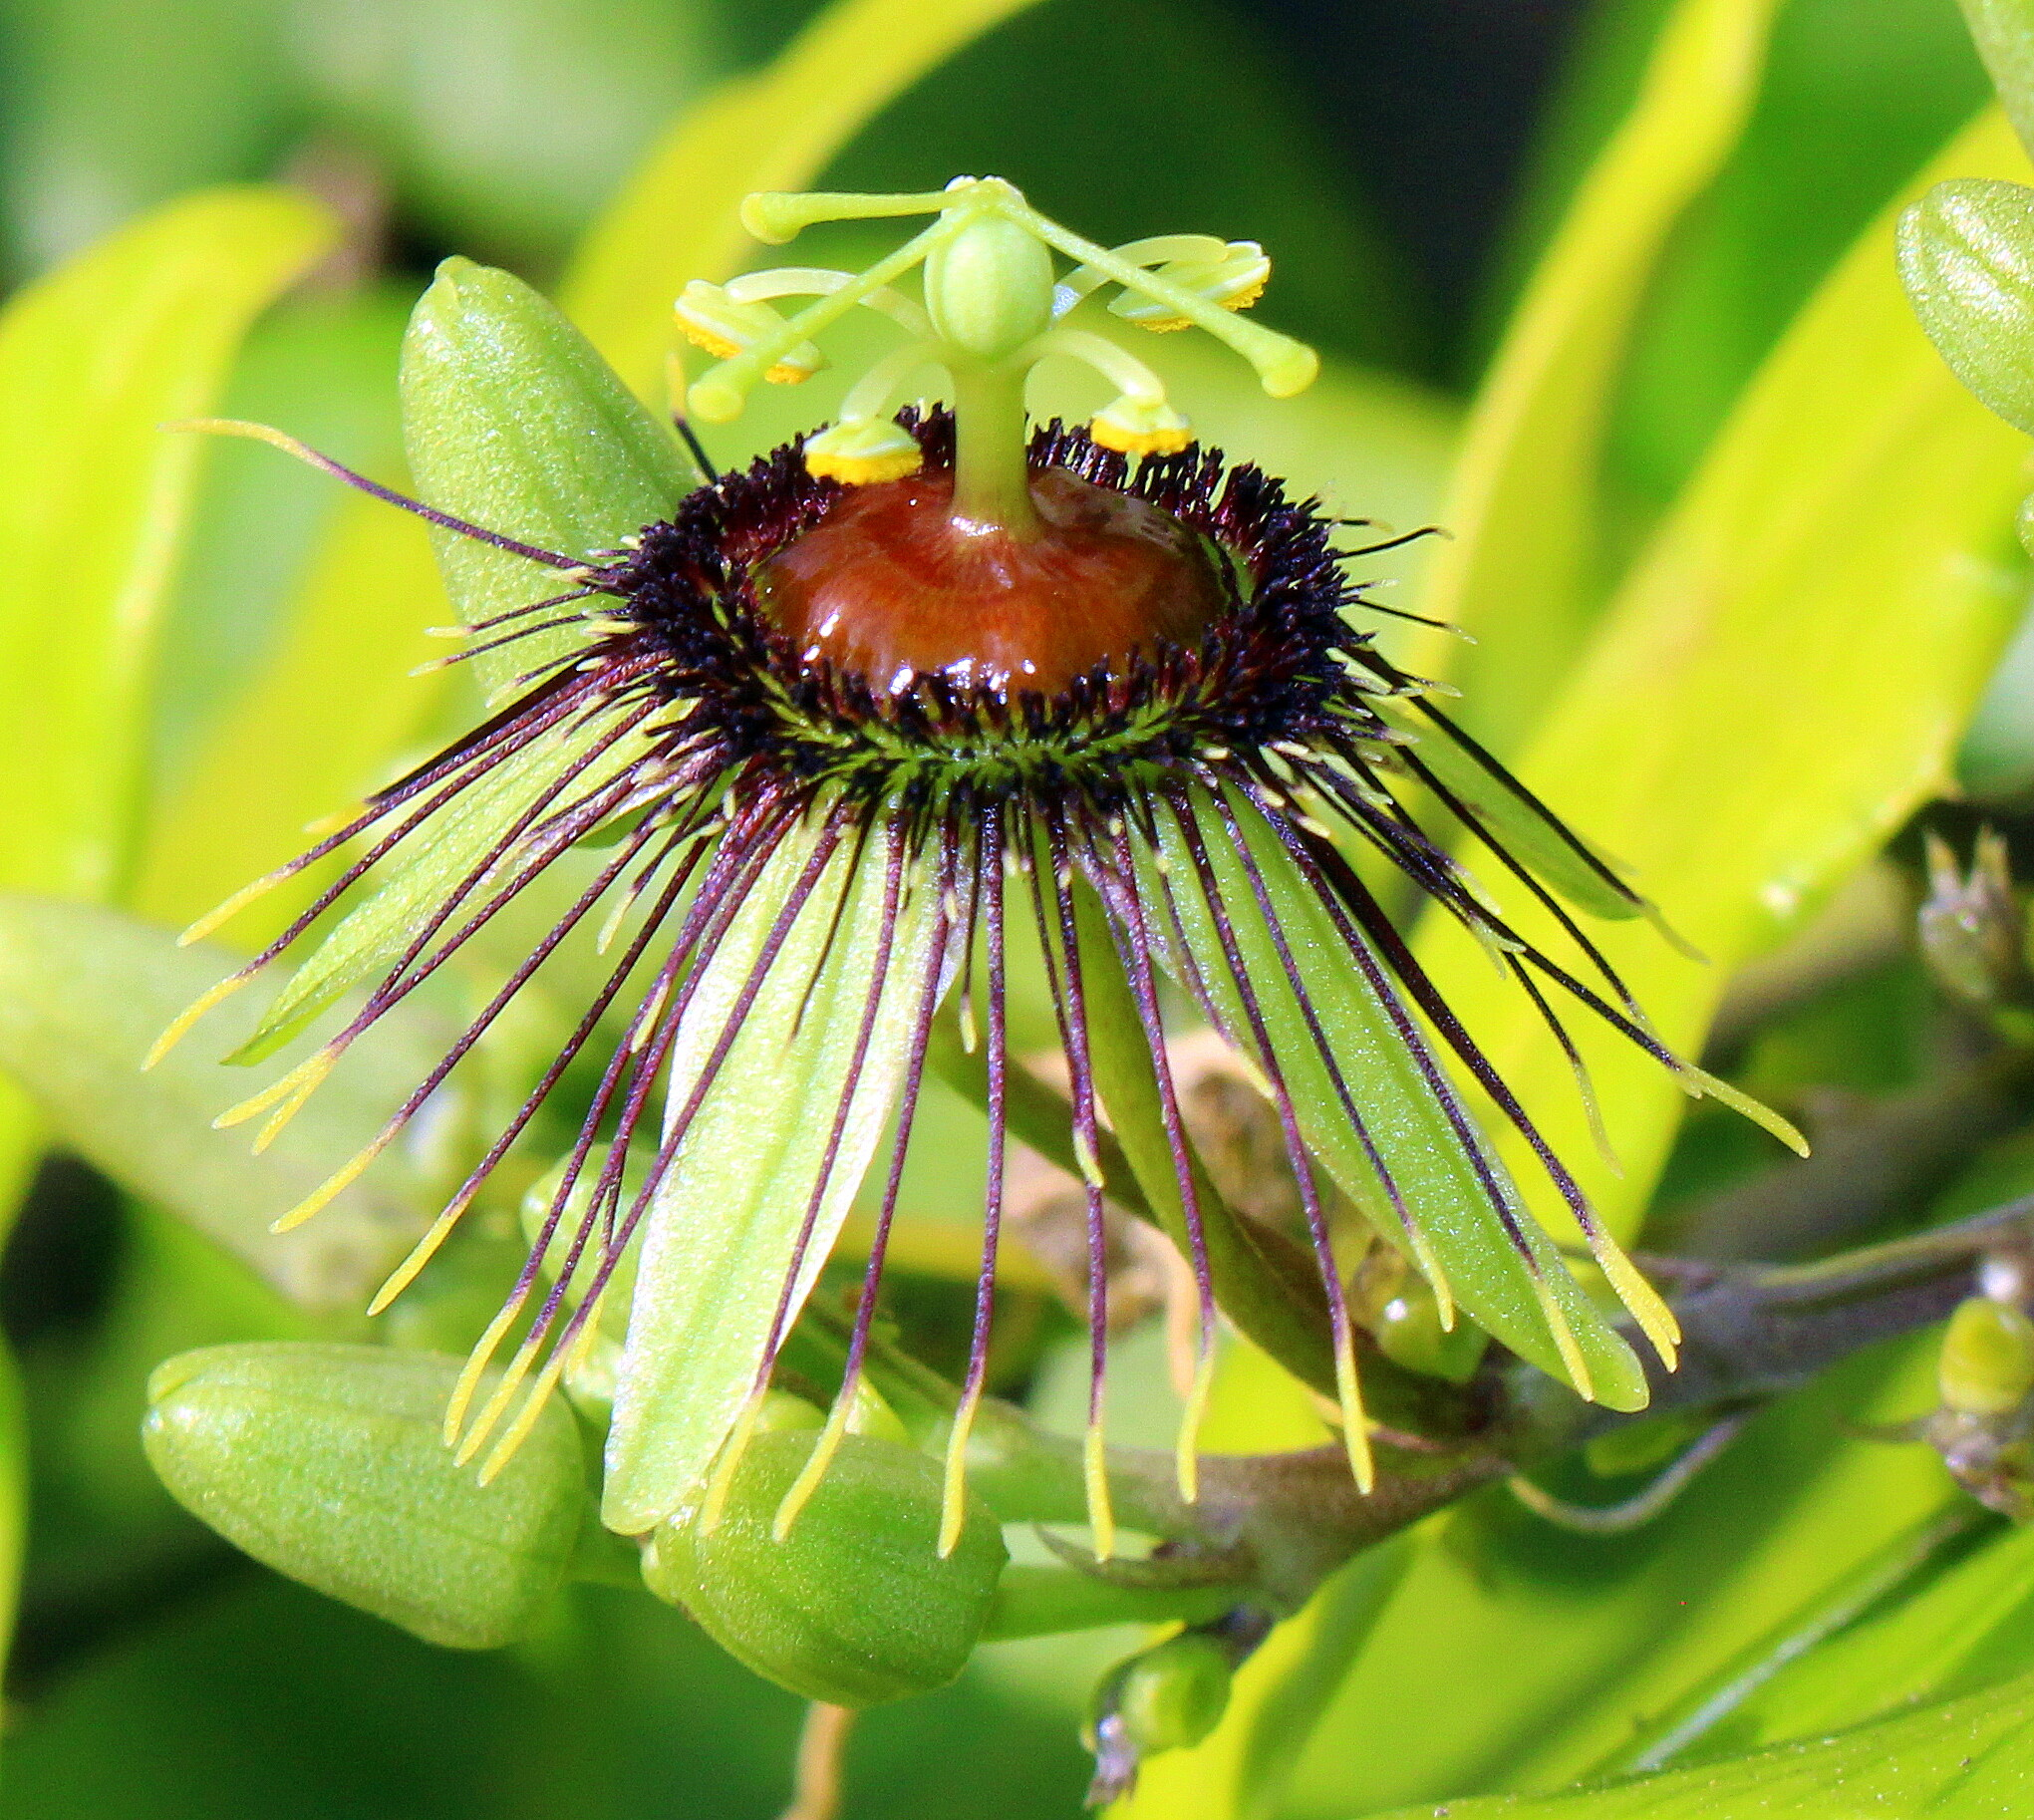 Bizarre Passion Flower in Bloom